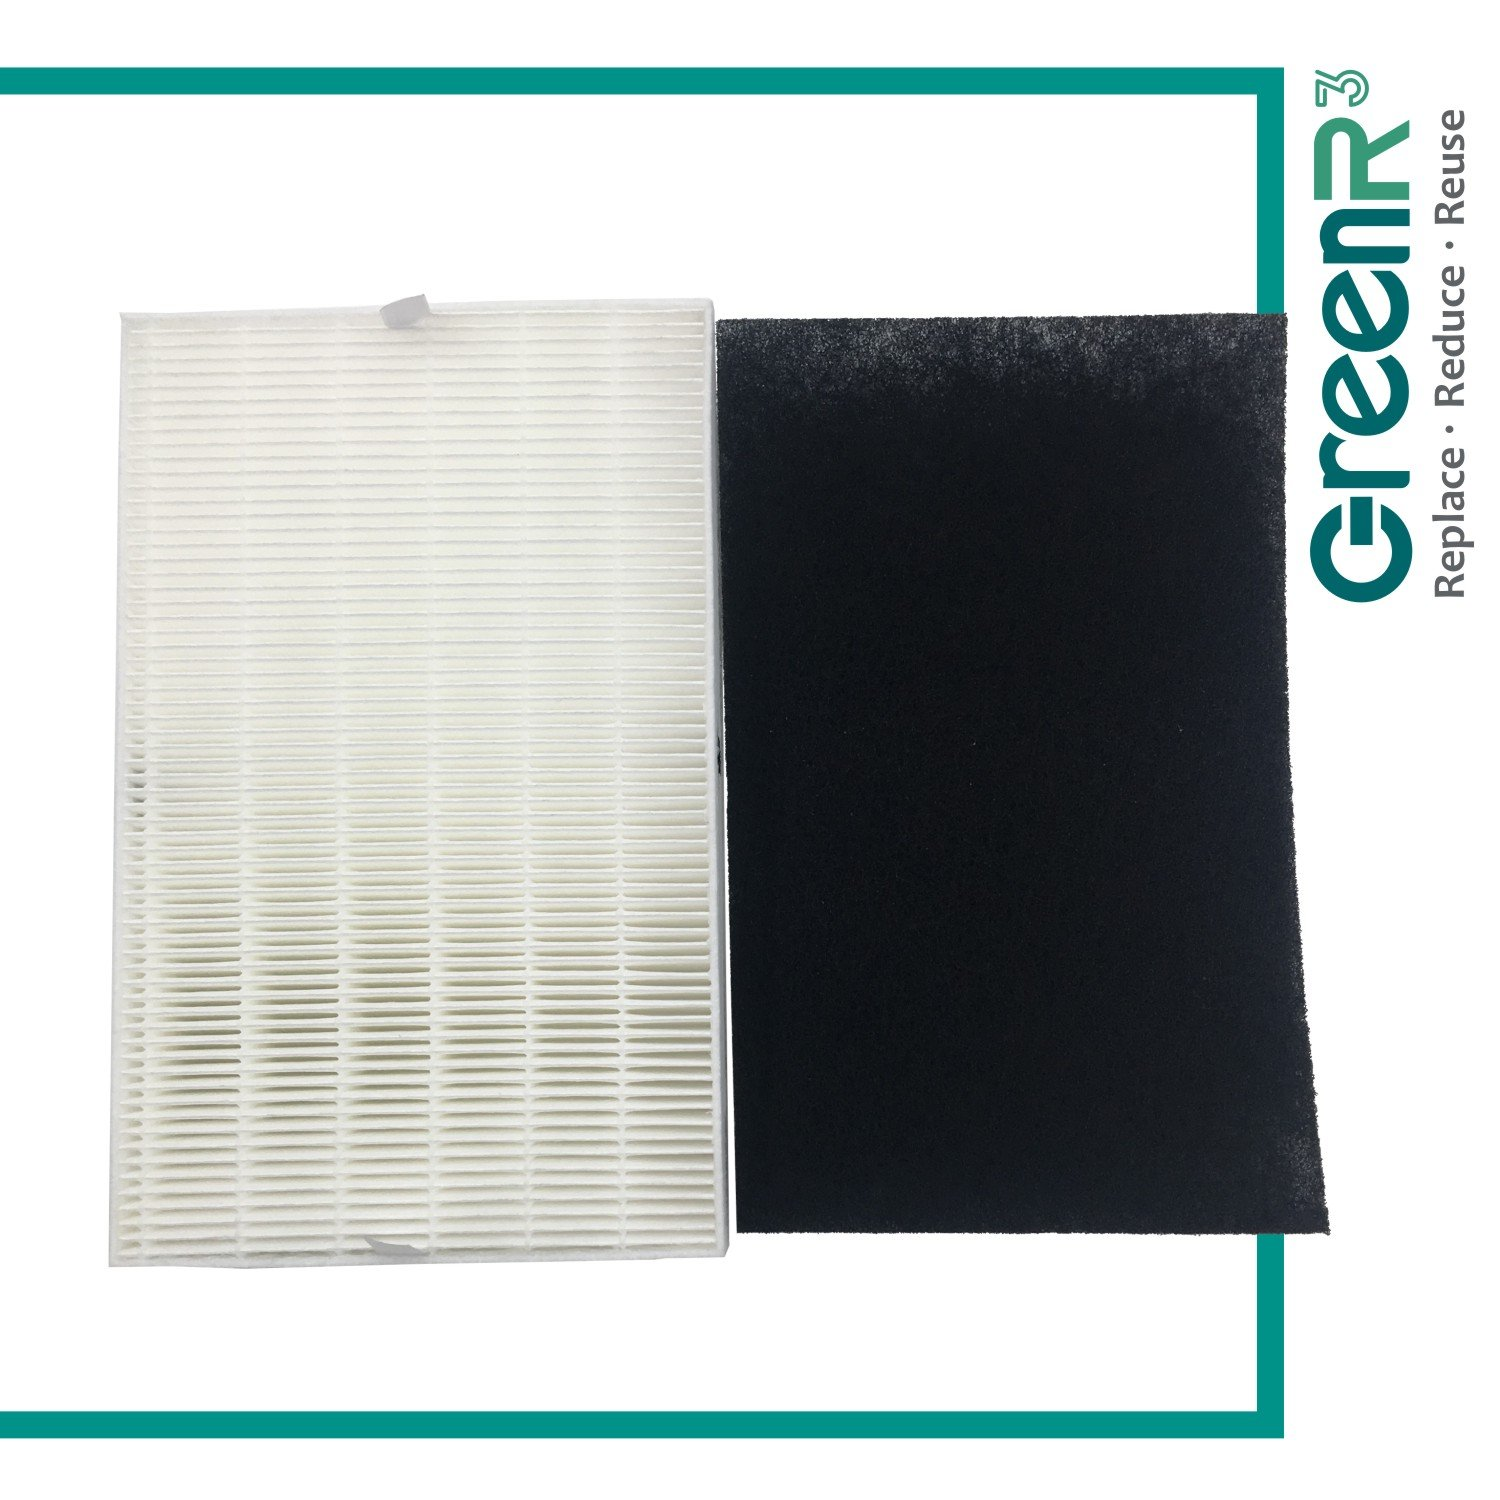 GreenR3 1-PACK HEPA Air Filters Air Purifiers for Honeywell HRF-R1 fits Filter R HPA-090 Series HPA-100 HPA090 HPA100 HPA-090 HPA-100 Console Model Replacement Parts Tool Accessories and more